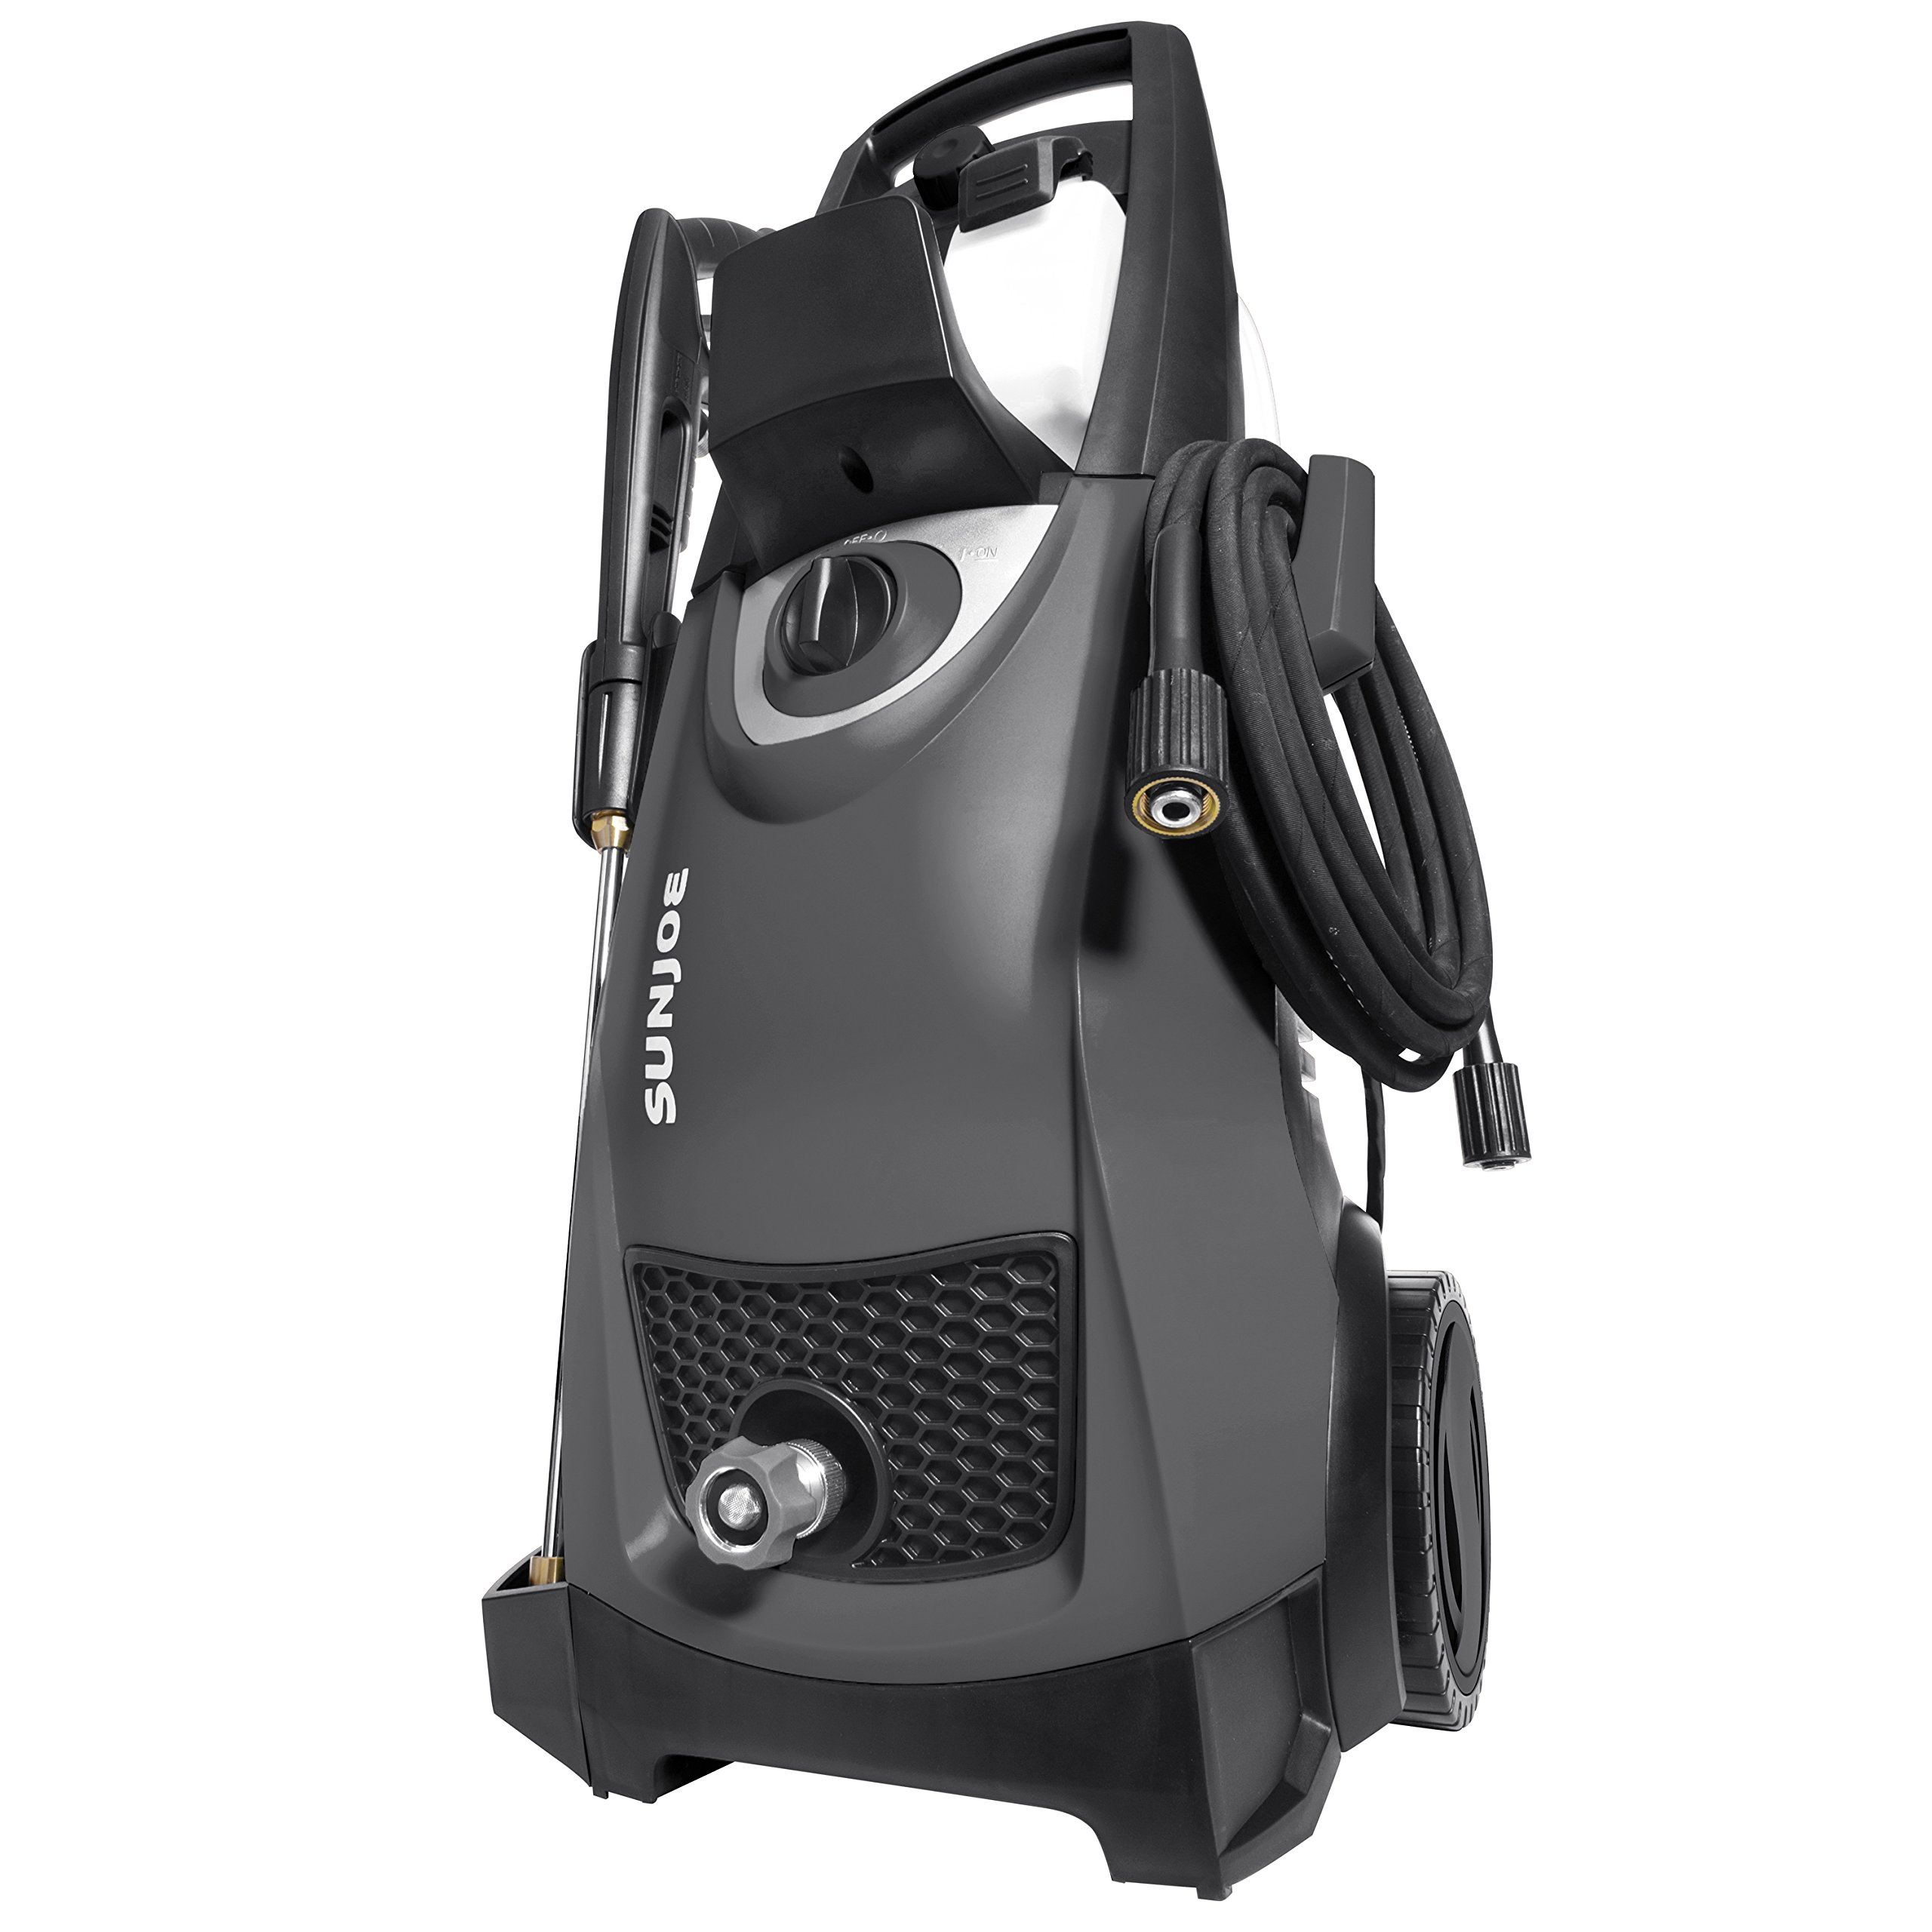 Snow Joe Sun Joe SPX3000-BLK Pressure Joe 2030 PSI 1.76 GPM 14.5-Amp Electric Pressure Washer, Black